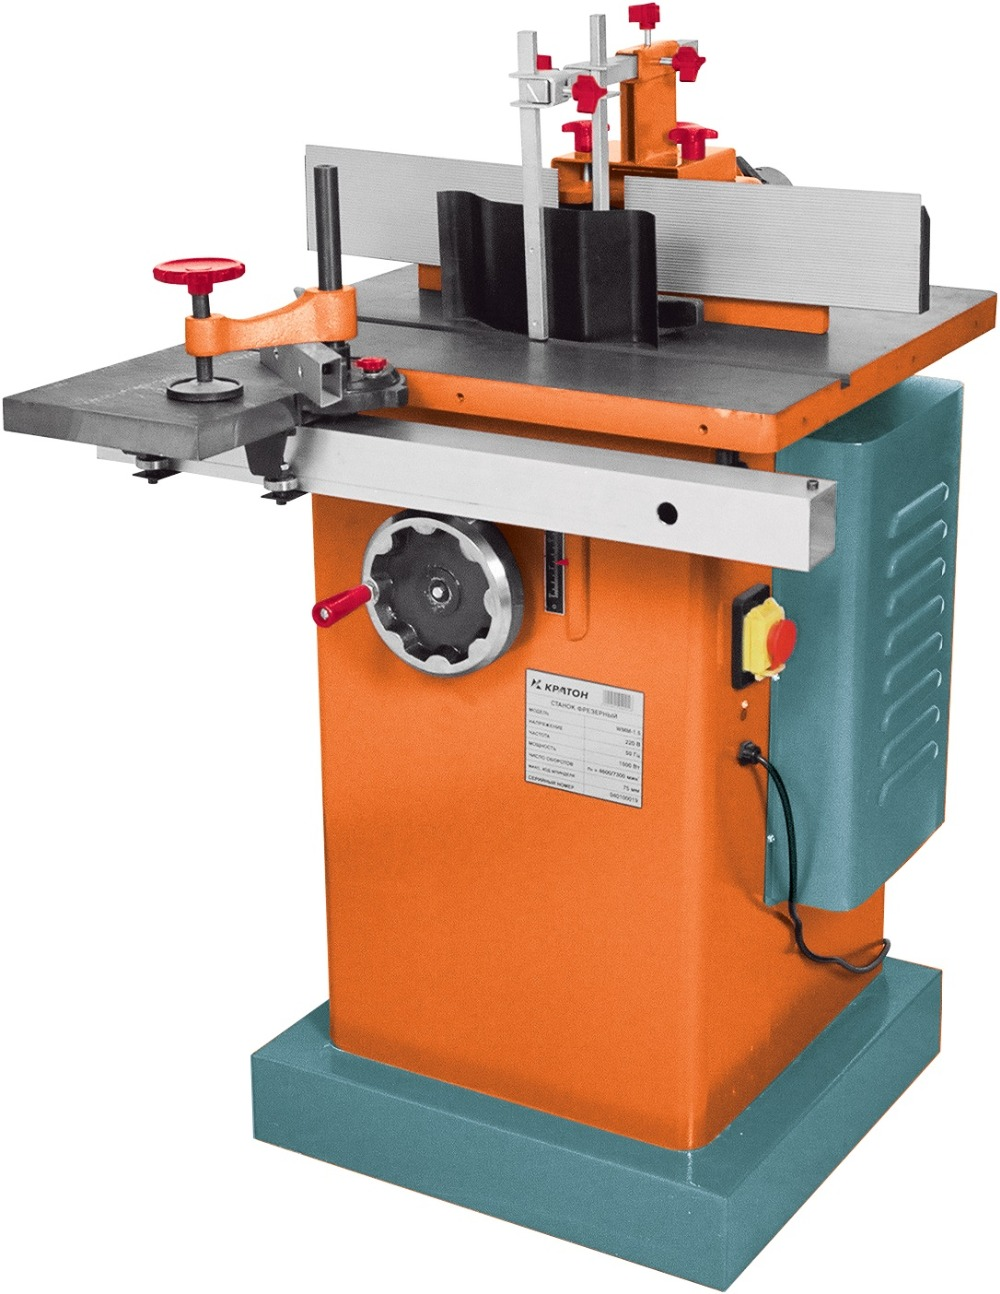 Vertical milling machine KRATON WMM-1,5 500w er11 er16 dc machine tool spindle 55mm cnc clamp bracket brushless router spindle for milling machine